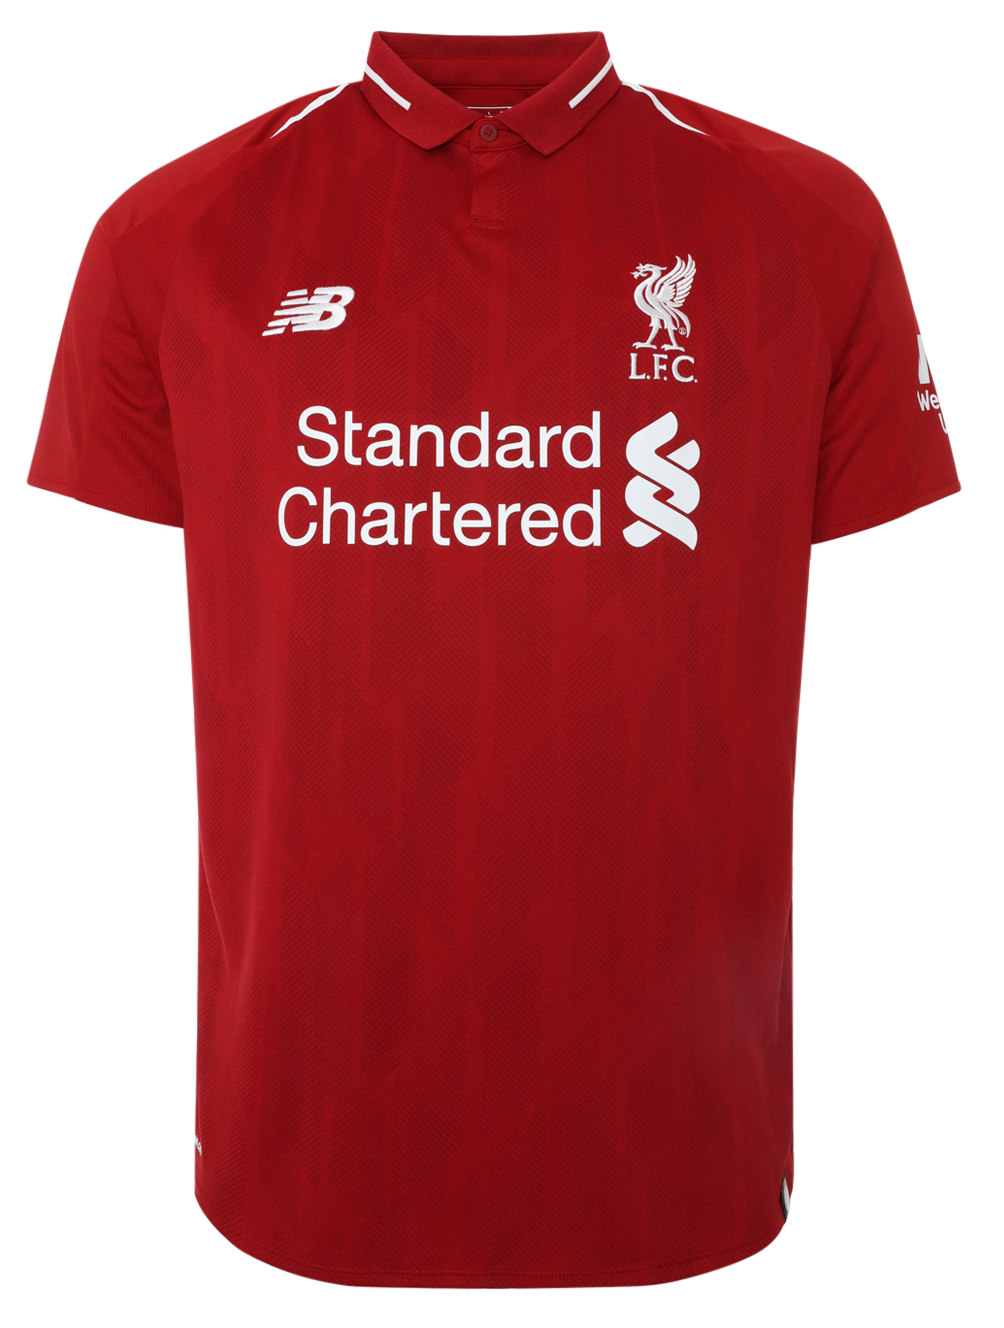 a32df49fd 2018-19 LFC home kit revealed - pre-order now - Liverpool FC